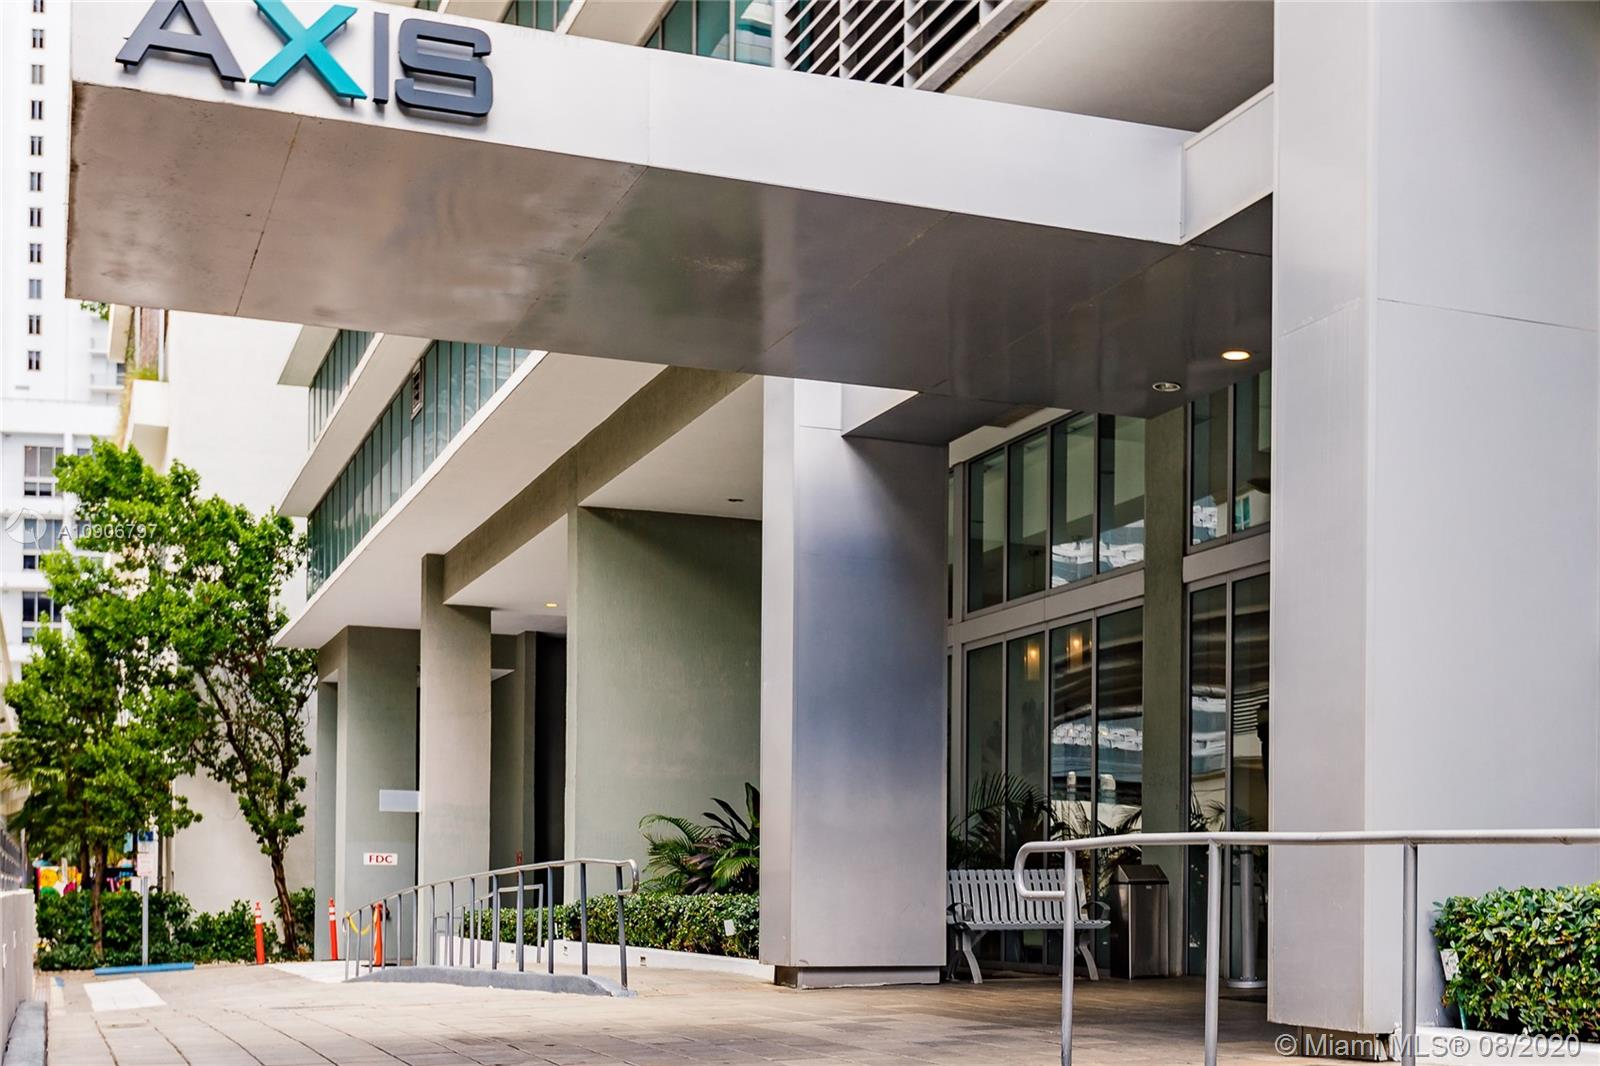 Axis on Brickell North Tower #1414-N - 1111 SW 1st Ave #1414-N, Miami, FL 33130